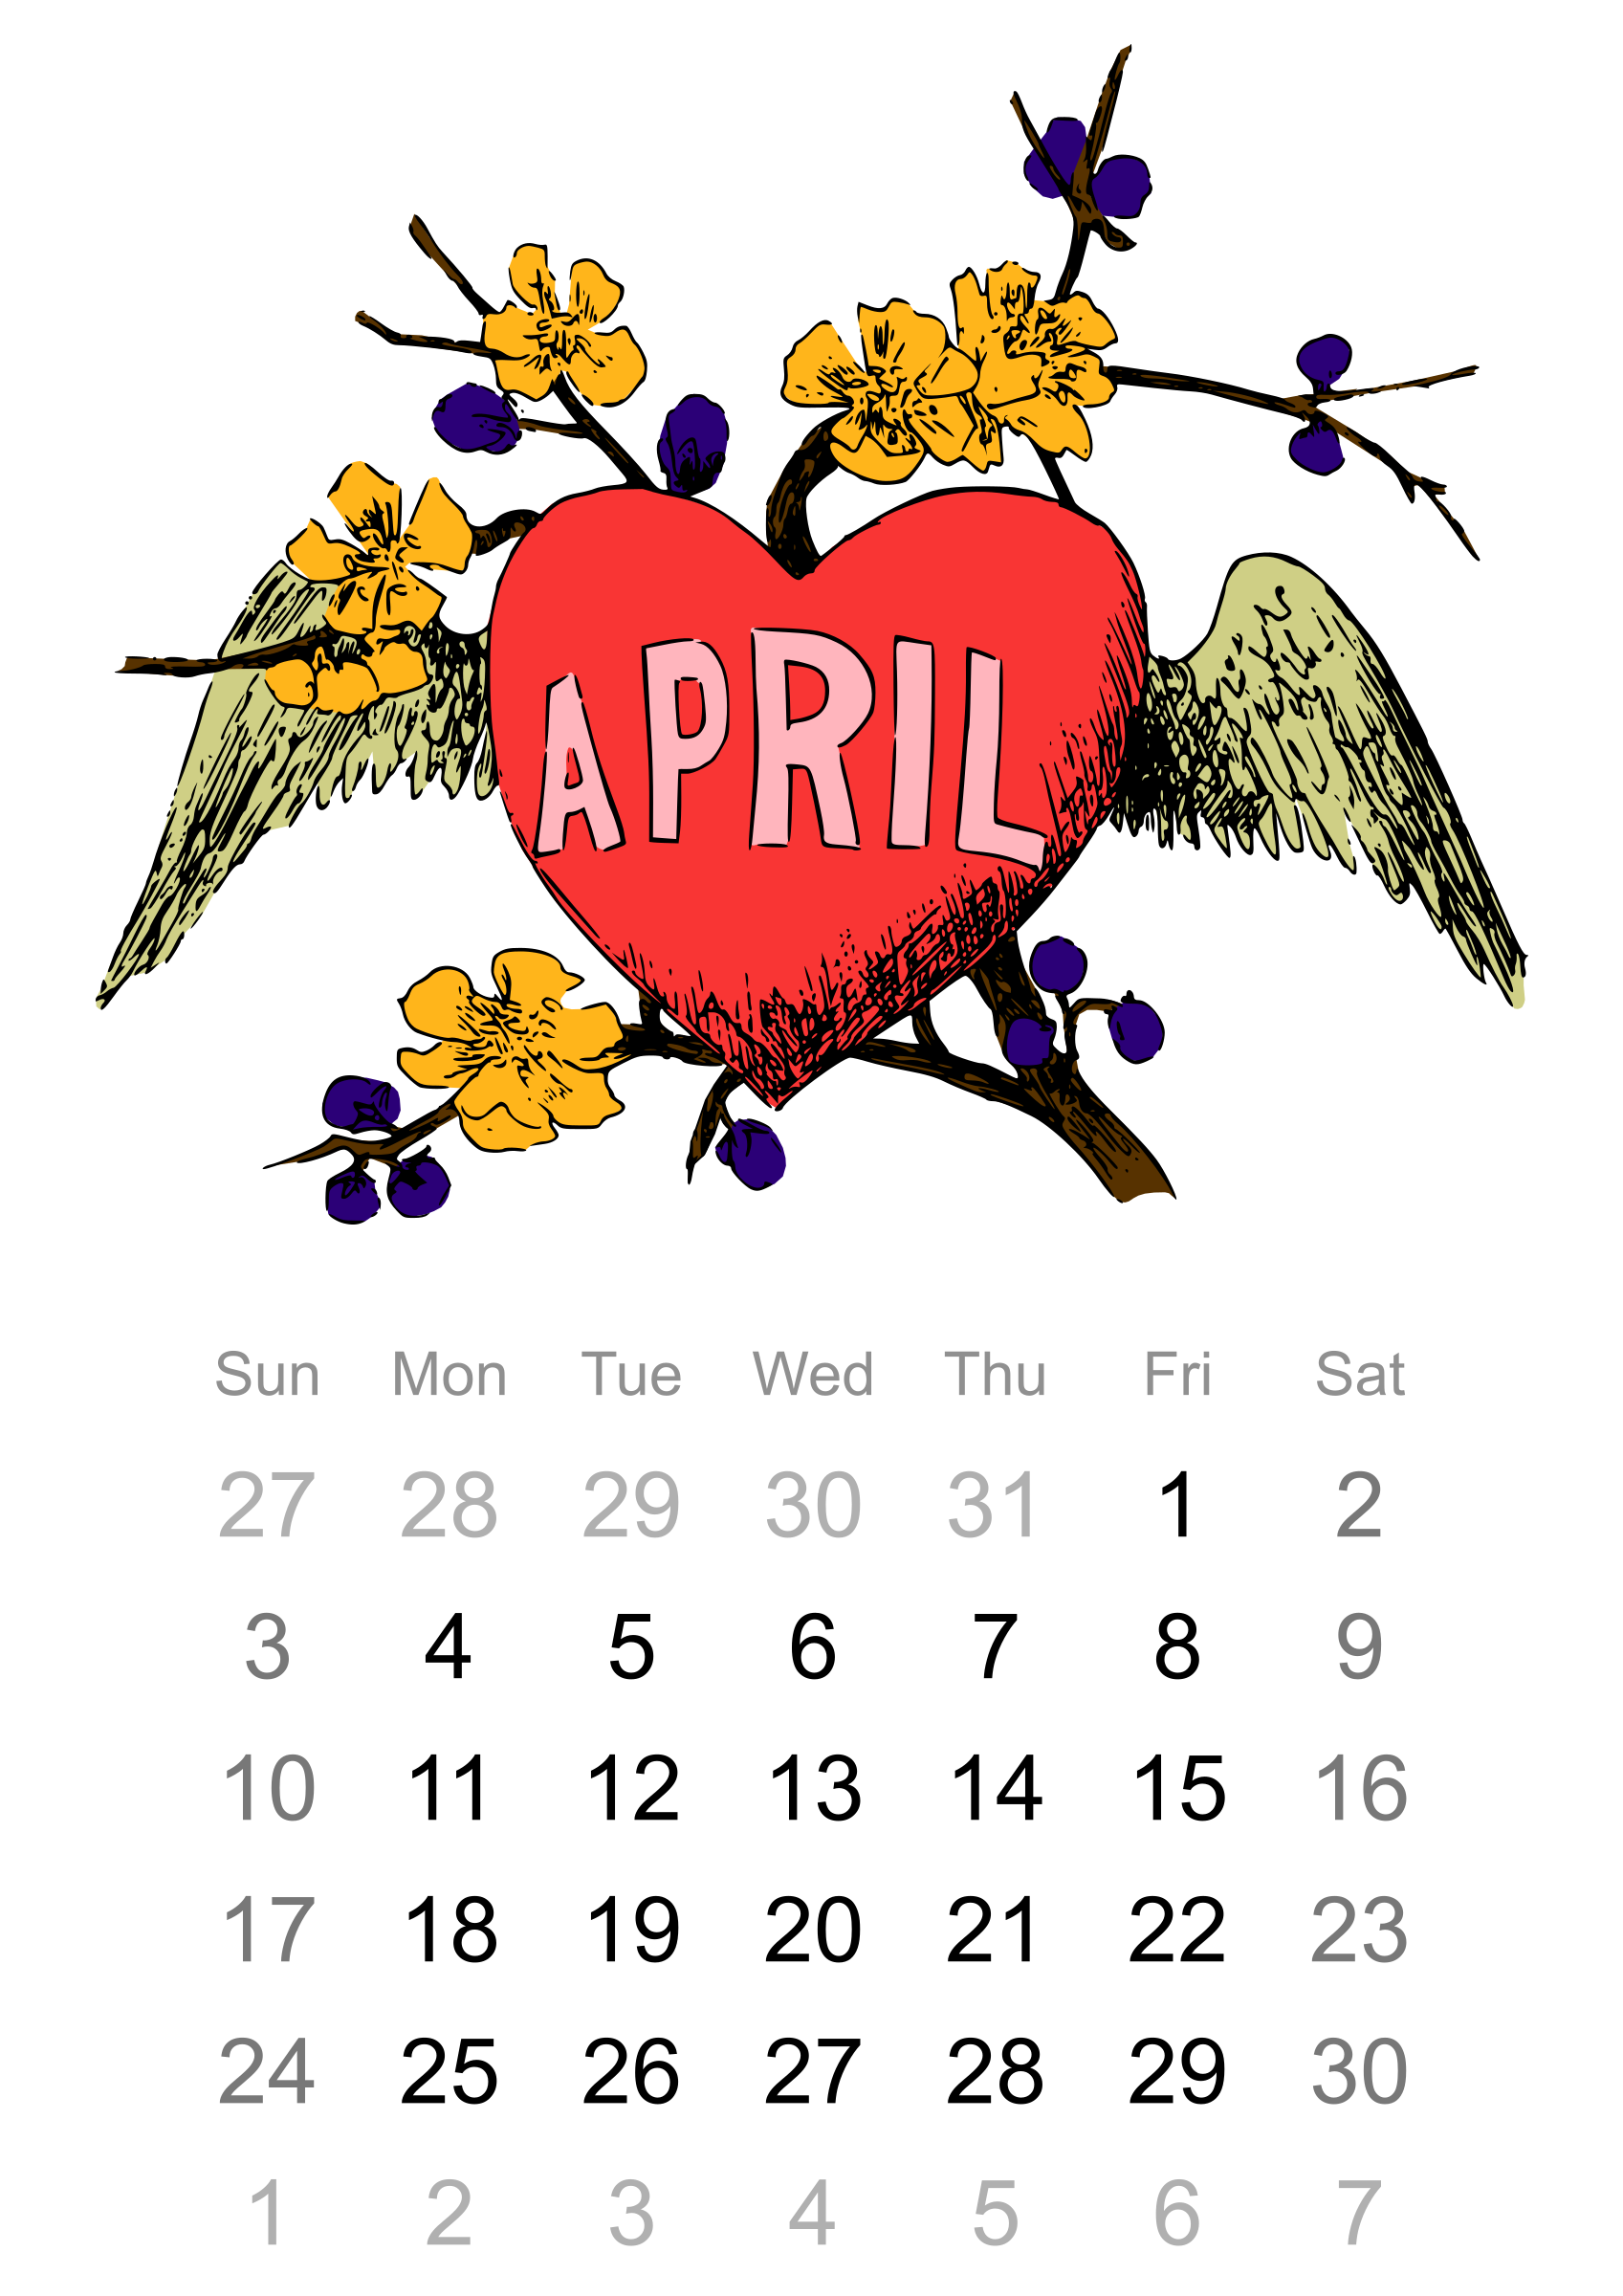 April big image png. Schedule clipart calendar 2016